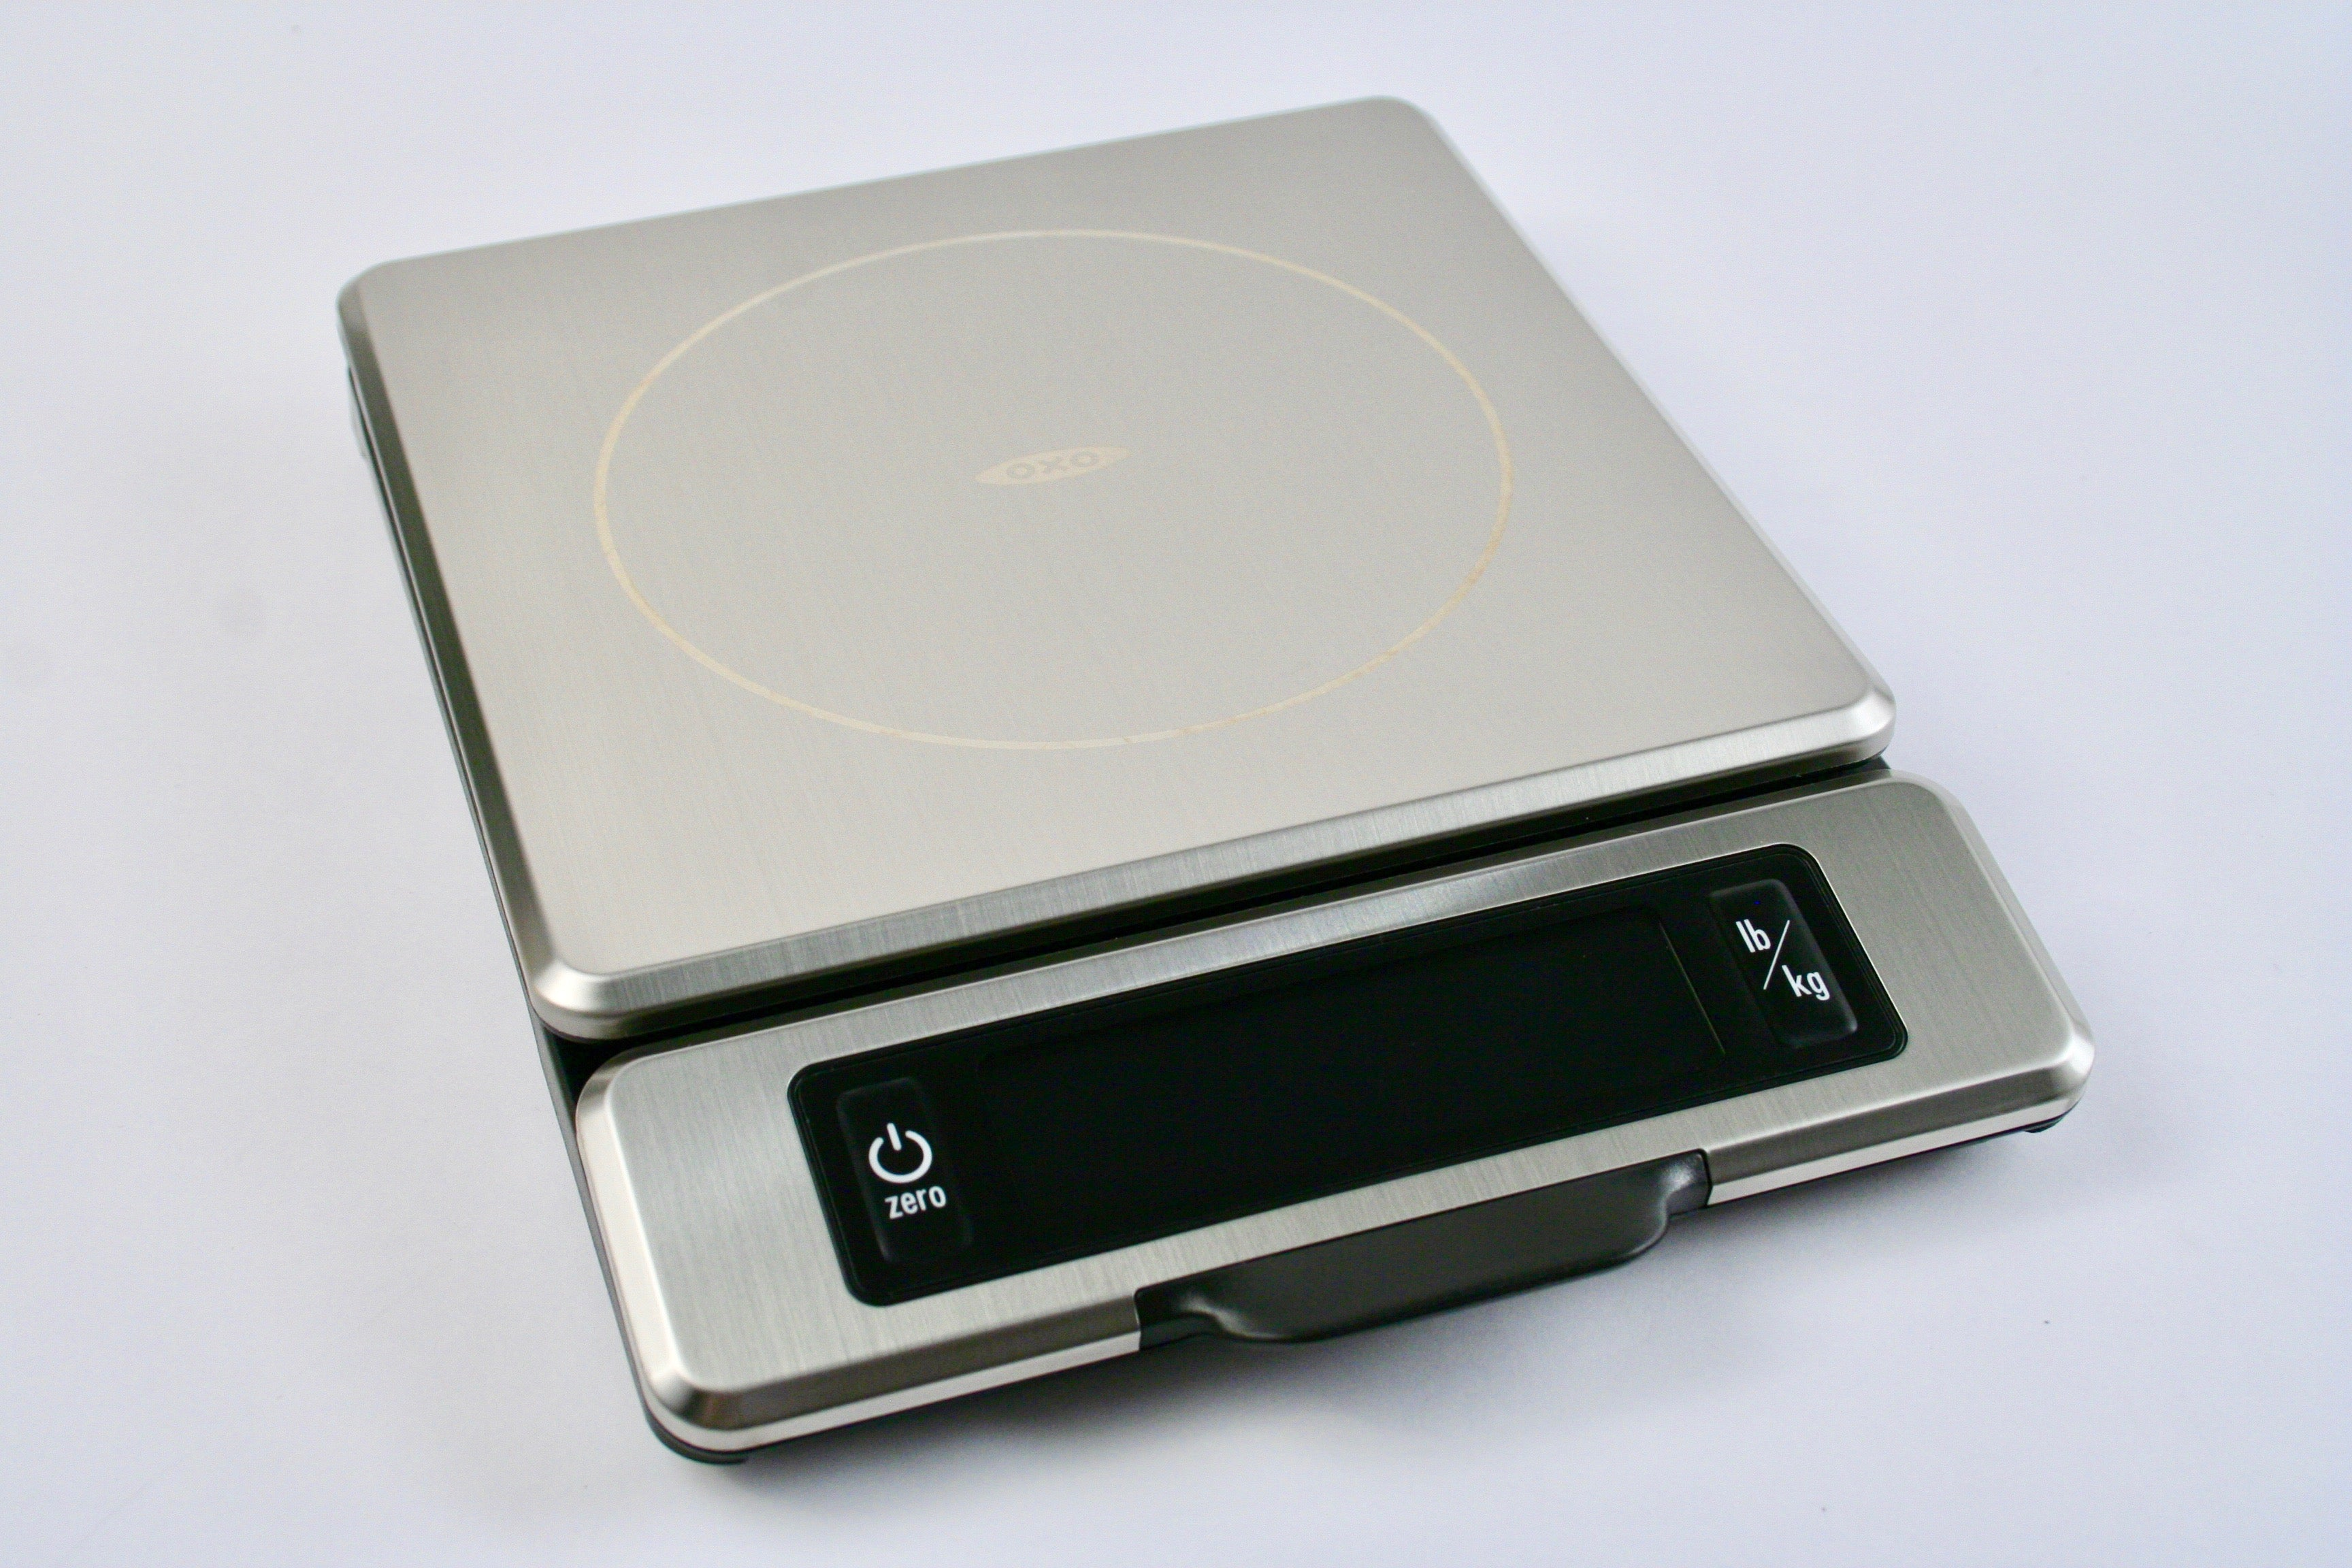 OXO Good Grips 11 lb Stainless Steel Food Scale with Pull out Display